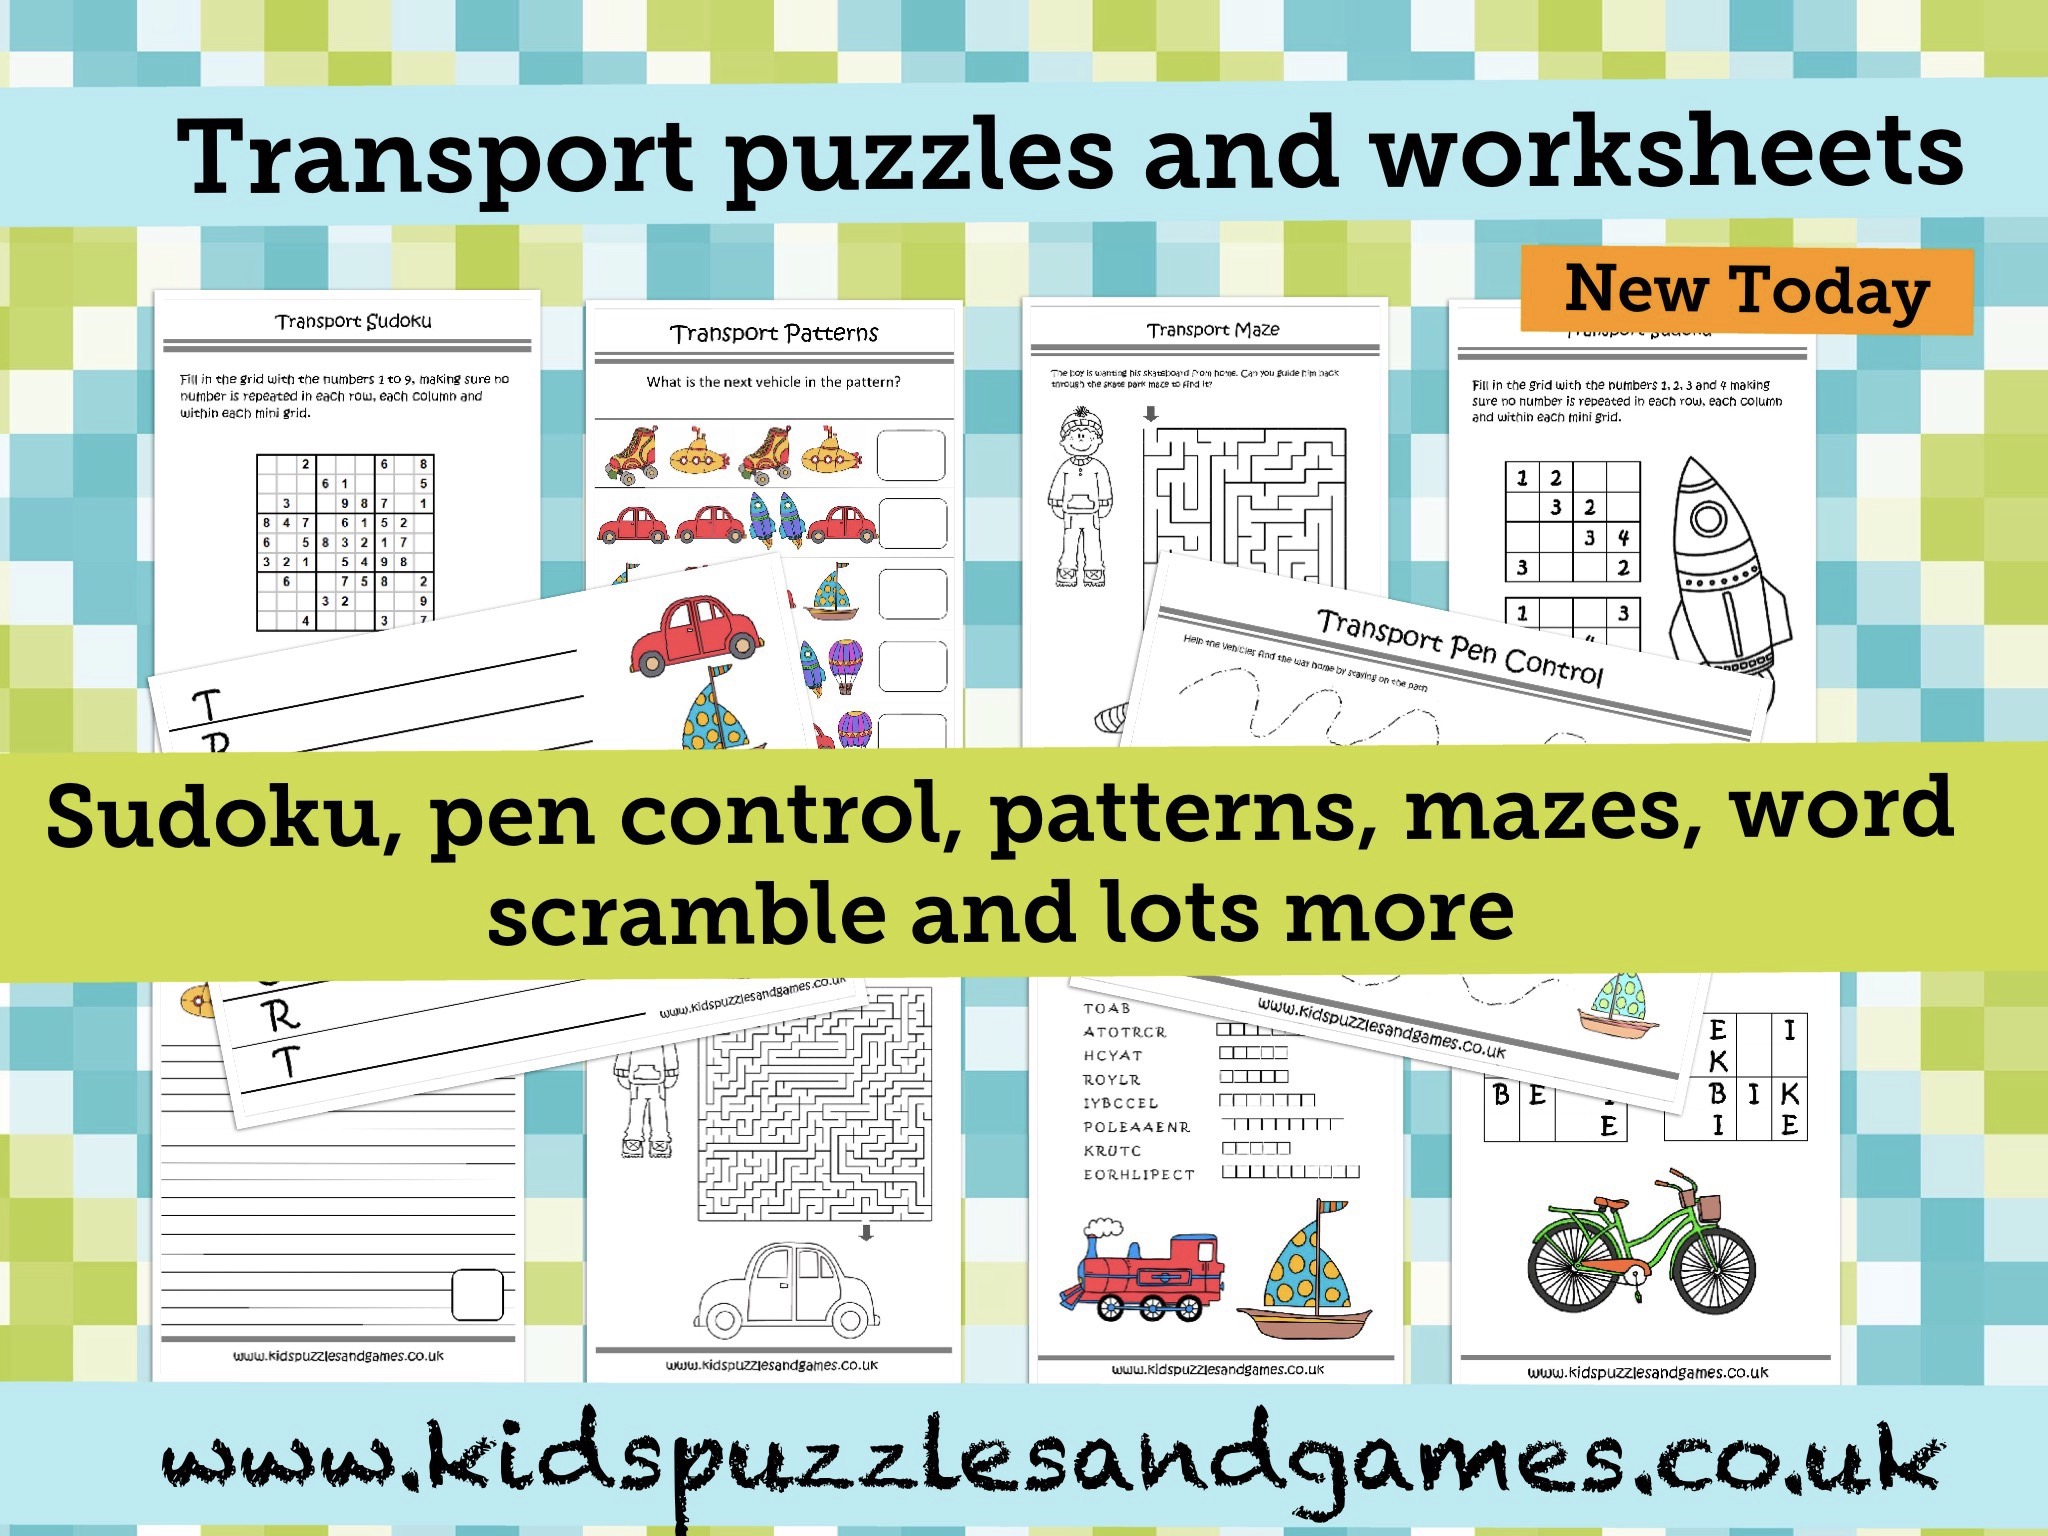 Welcome To Kids Puzzles And Games - Printable Children's Crossword Puzzles Uk